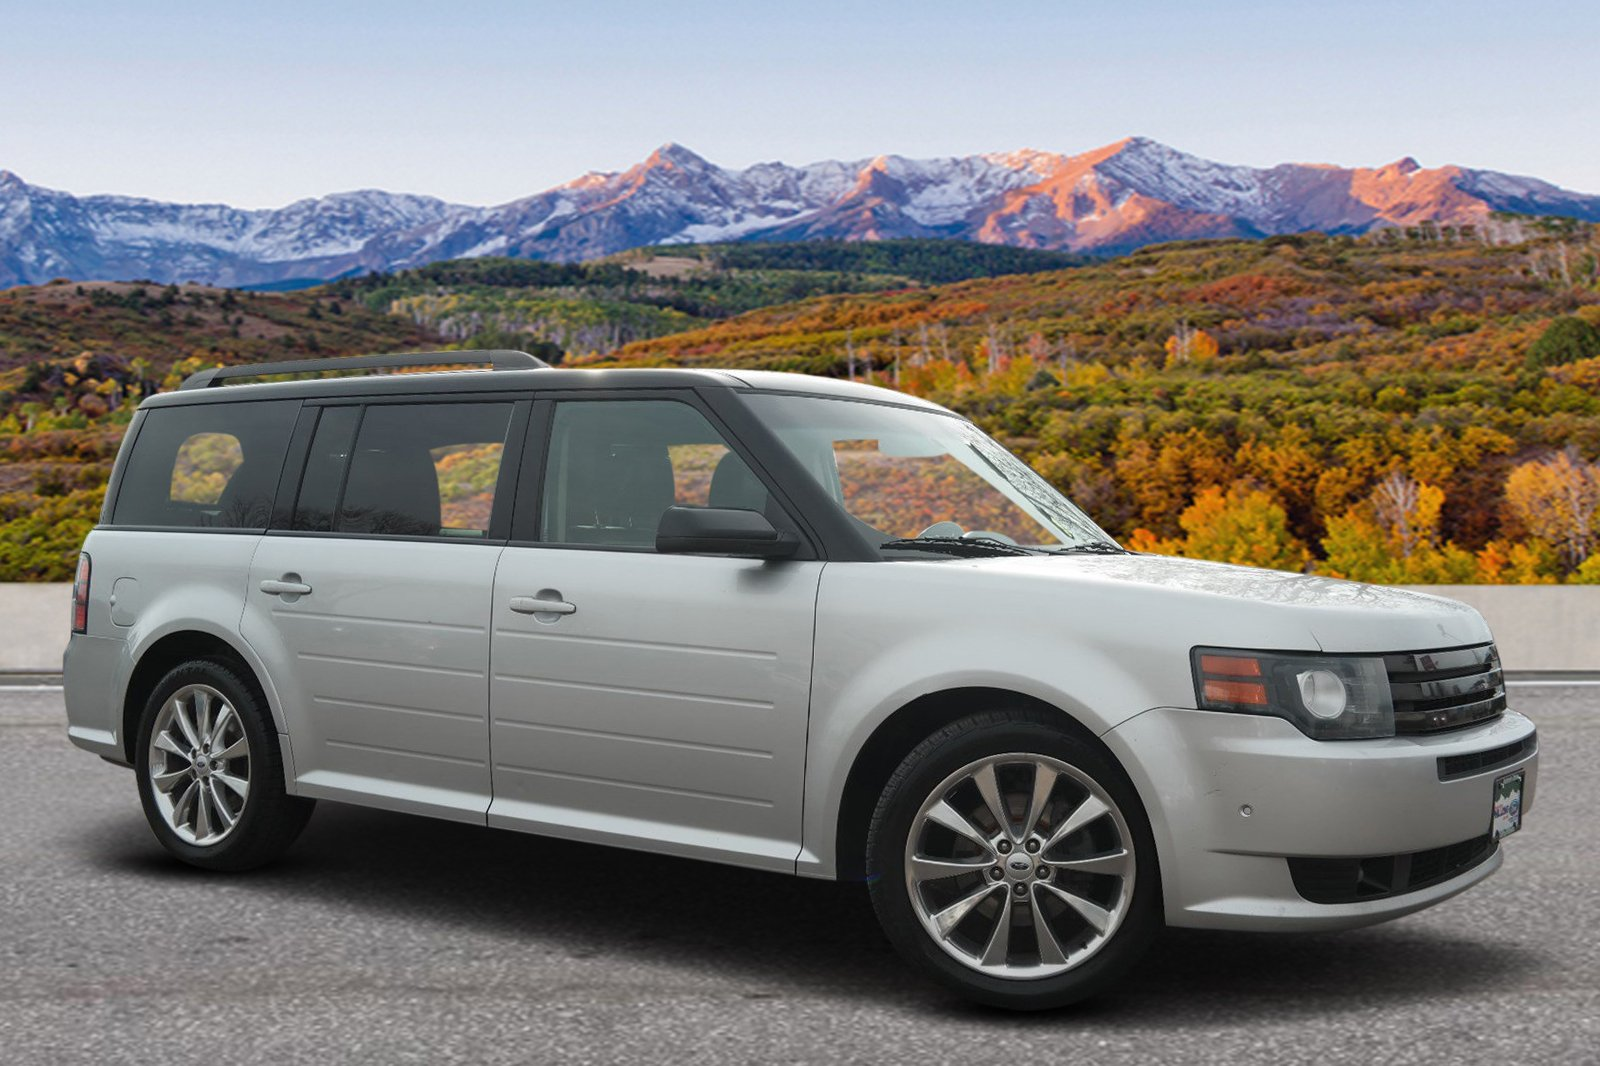 Pre-Owned 2012 Ford Flex Titanium w/EcoBoost